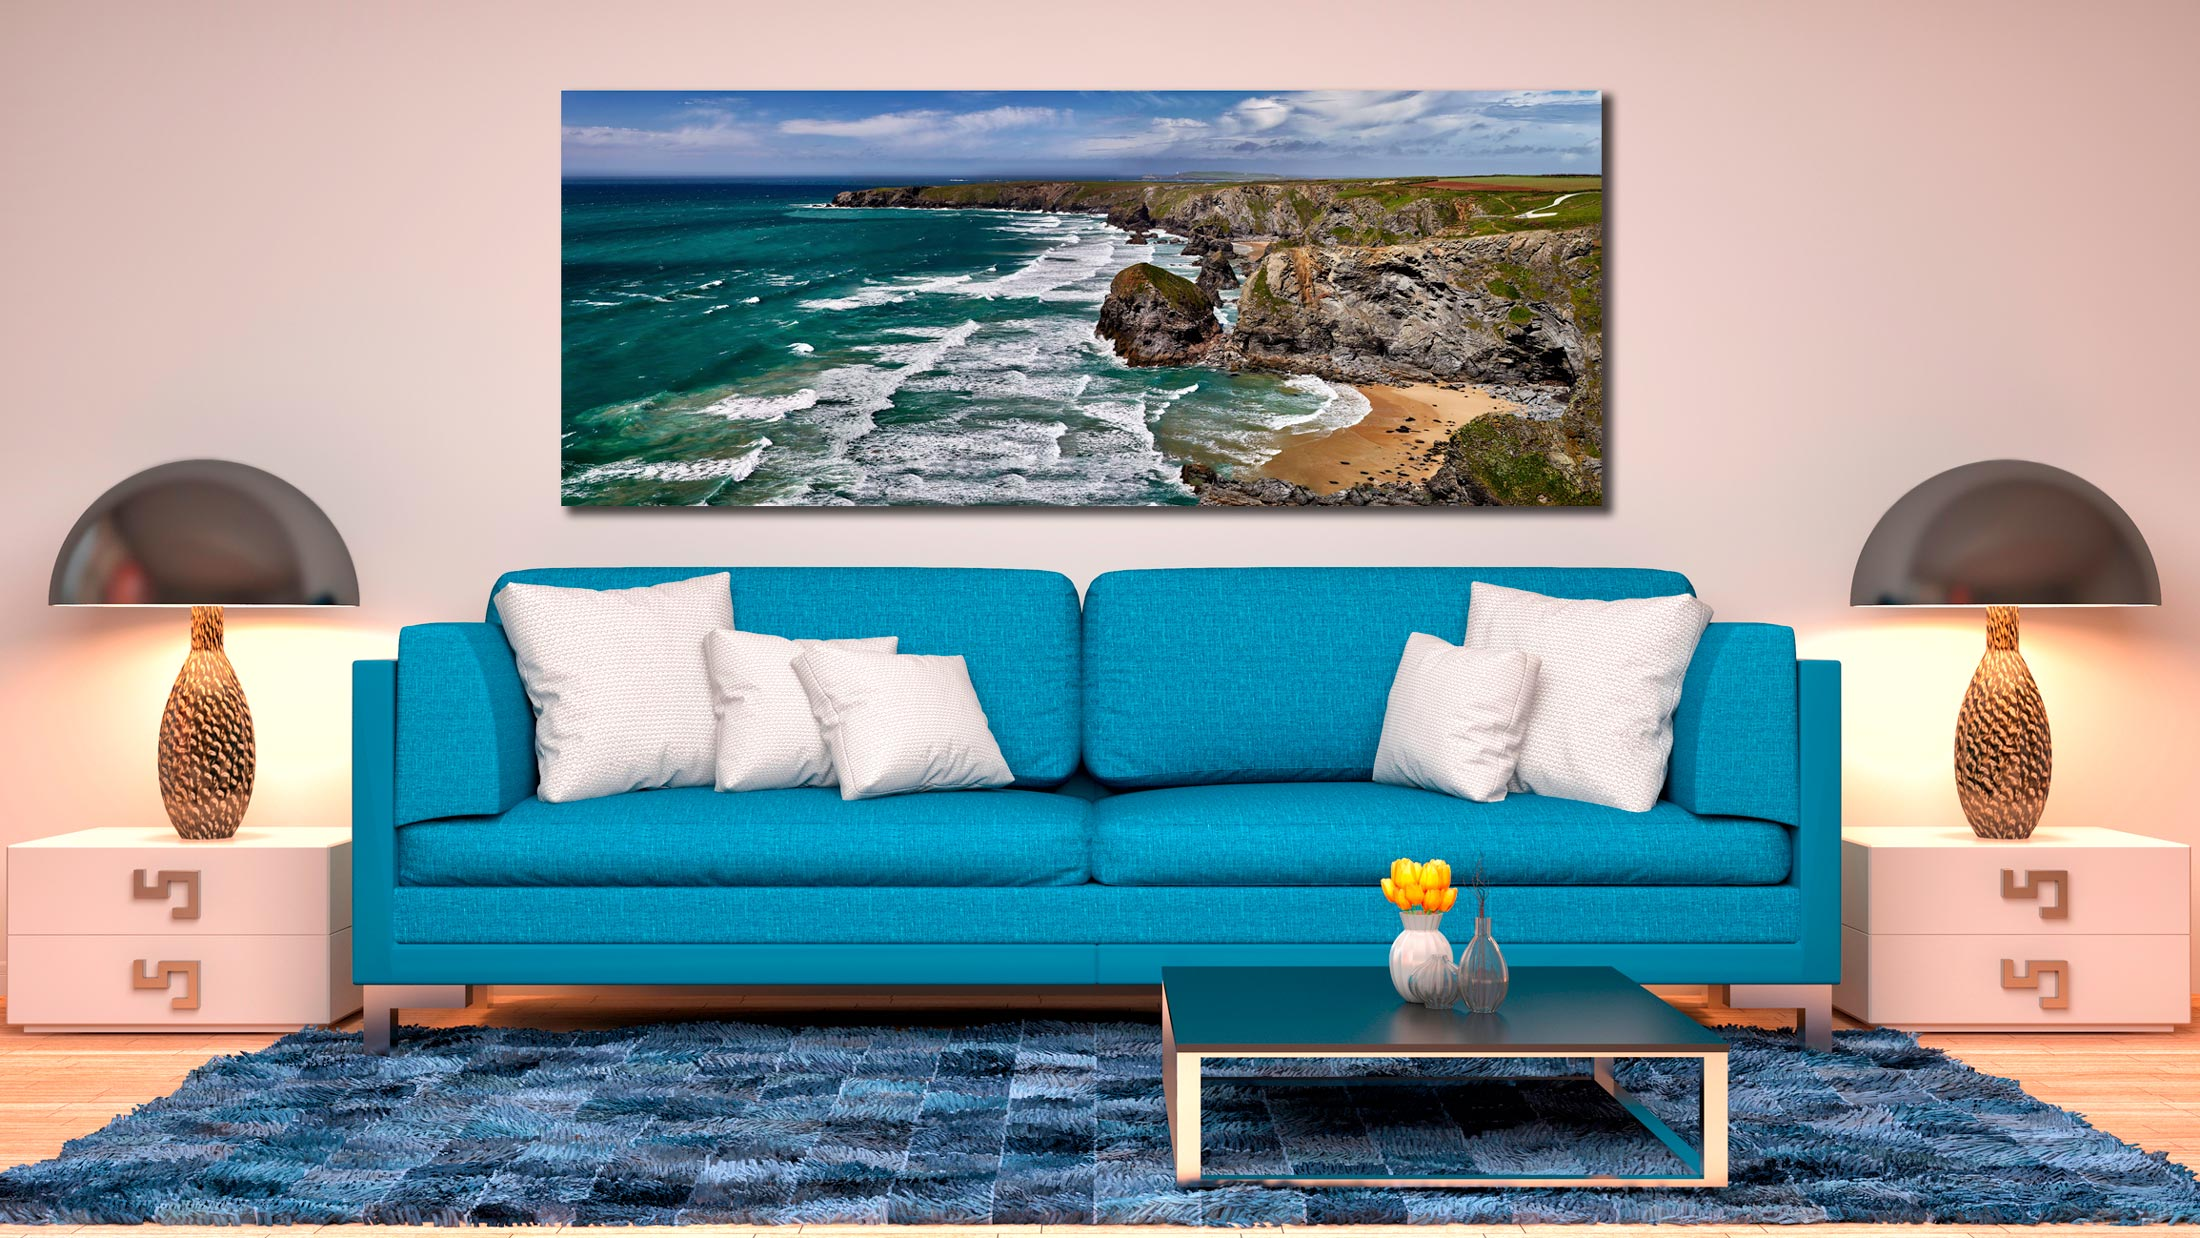 A beautiful summers day at Bedruthan Steps on the North coast of Cornwall - Print Aluminium Backing With Acrylic Glazing on Wall